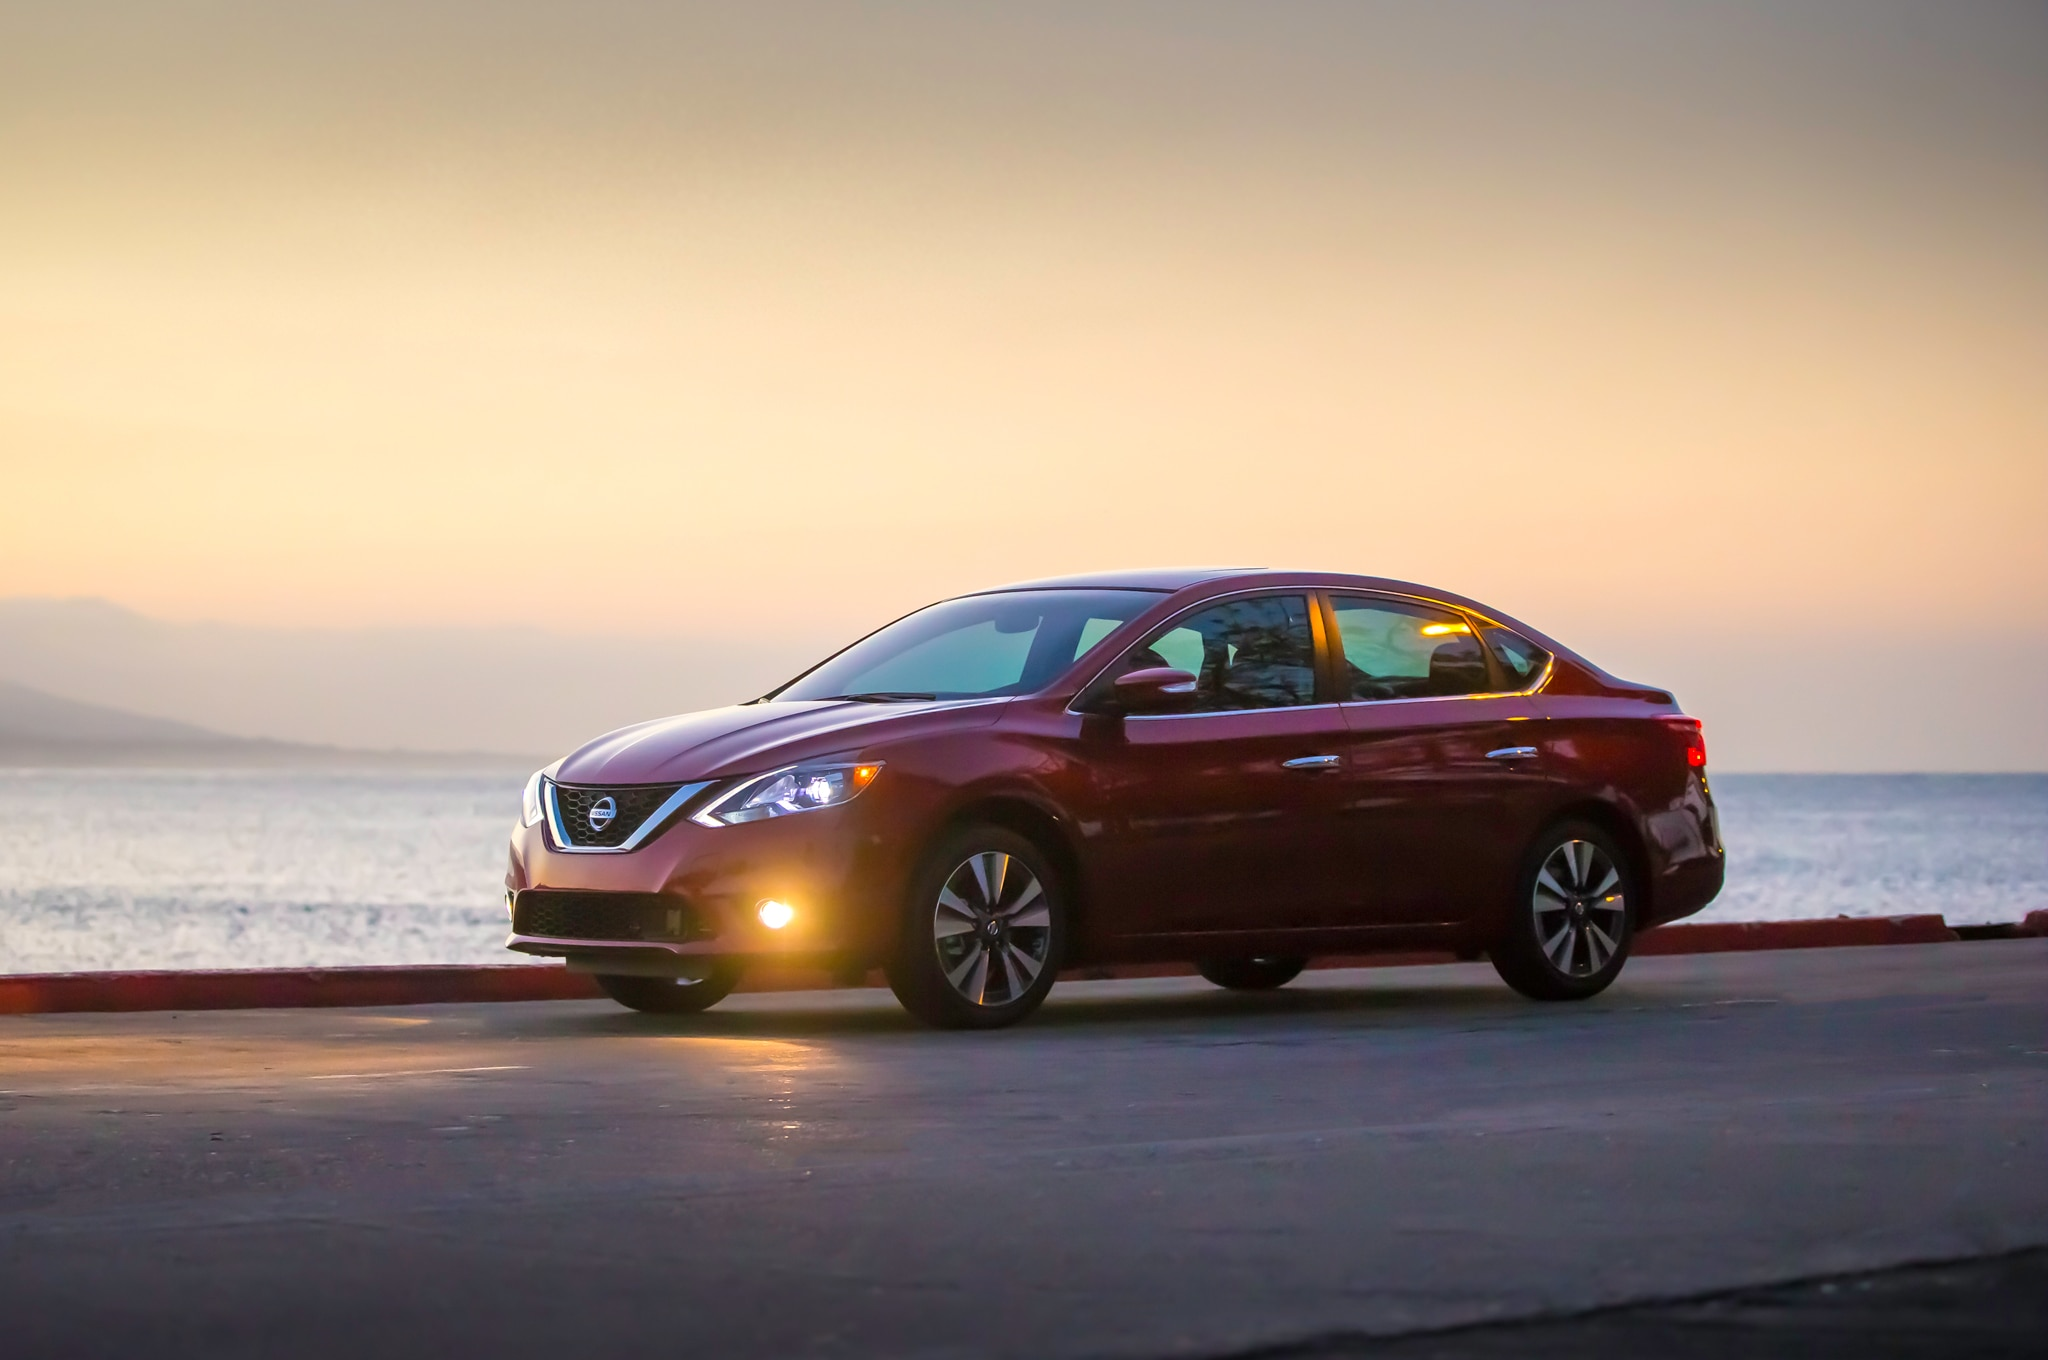 2016 Nissan Altima 2 5 Sr >> 2016 Nissan Sentra Refreshed, Looks More like Altima and ...